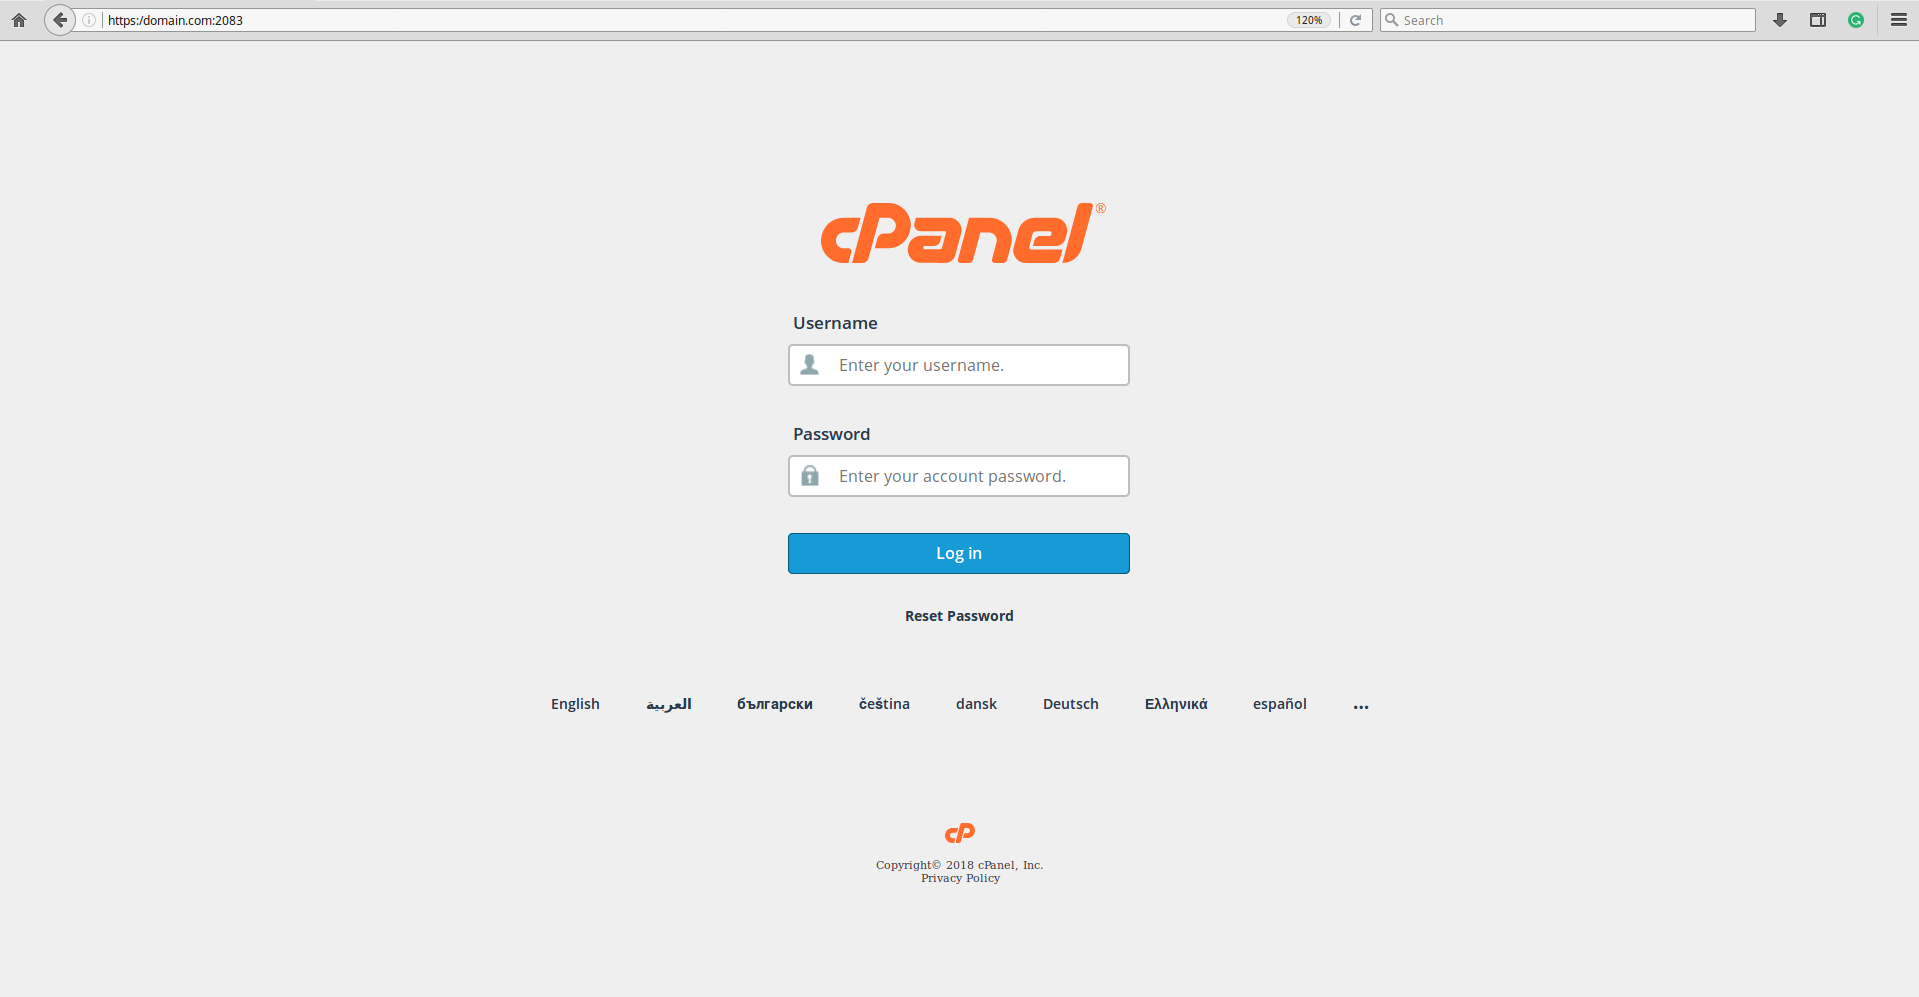 HostBill - How to create Email Accounts (cPanel) - Cirrus